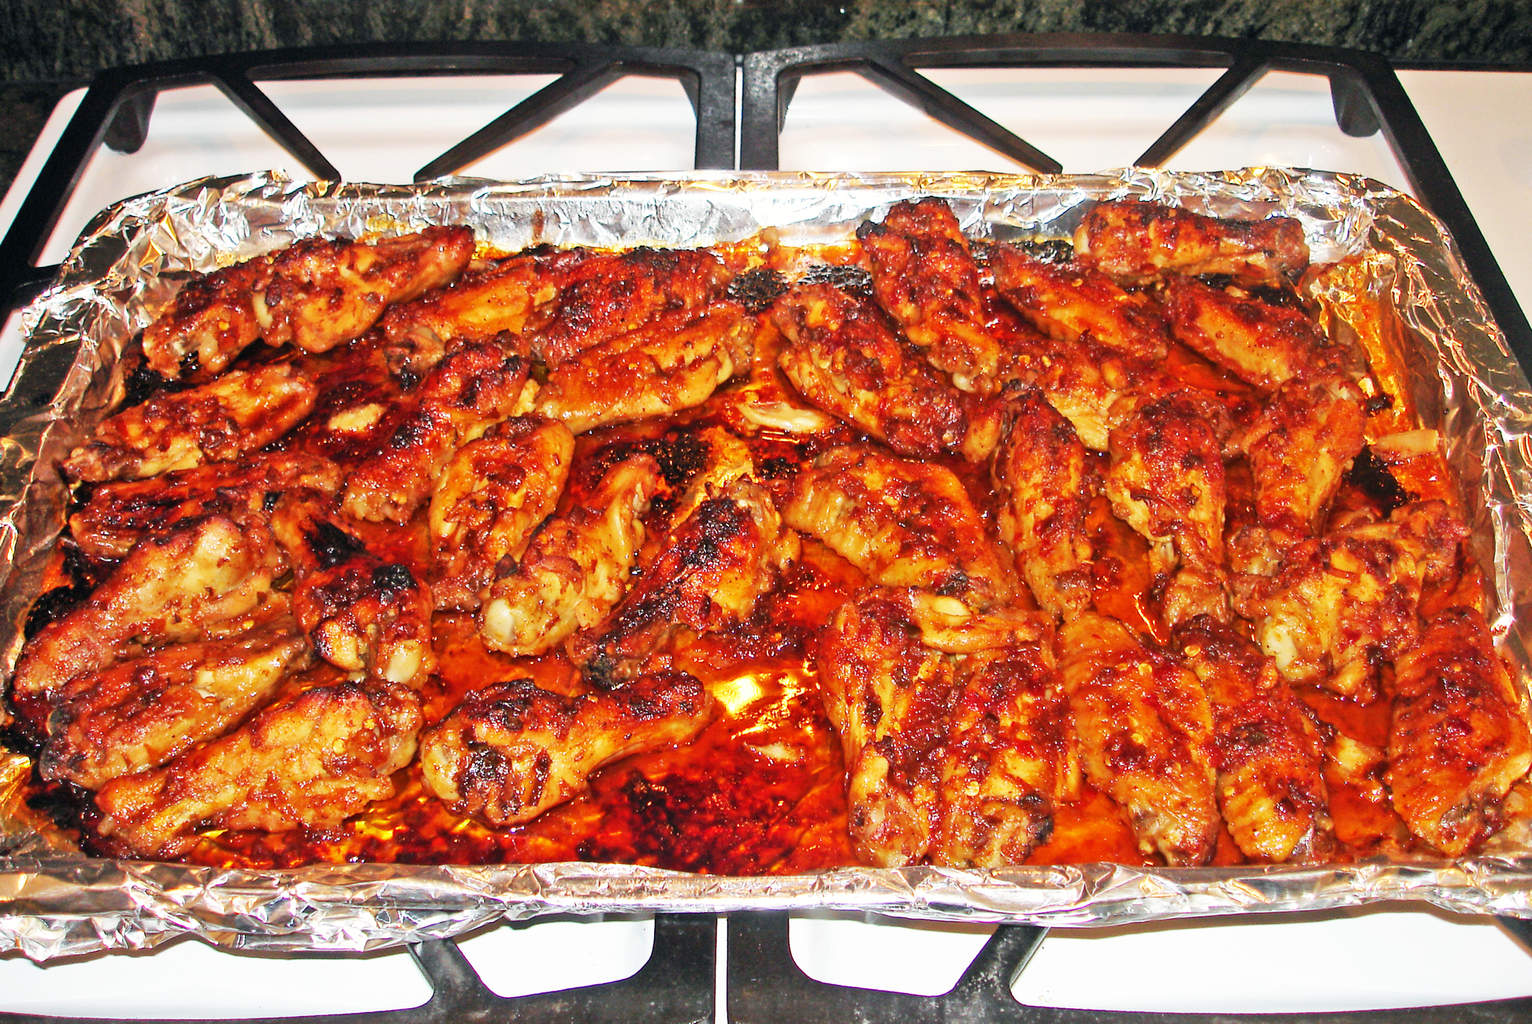 Caramelized Baked Chicken Party Wings Recipe Mountain Valley Living